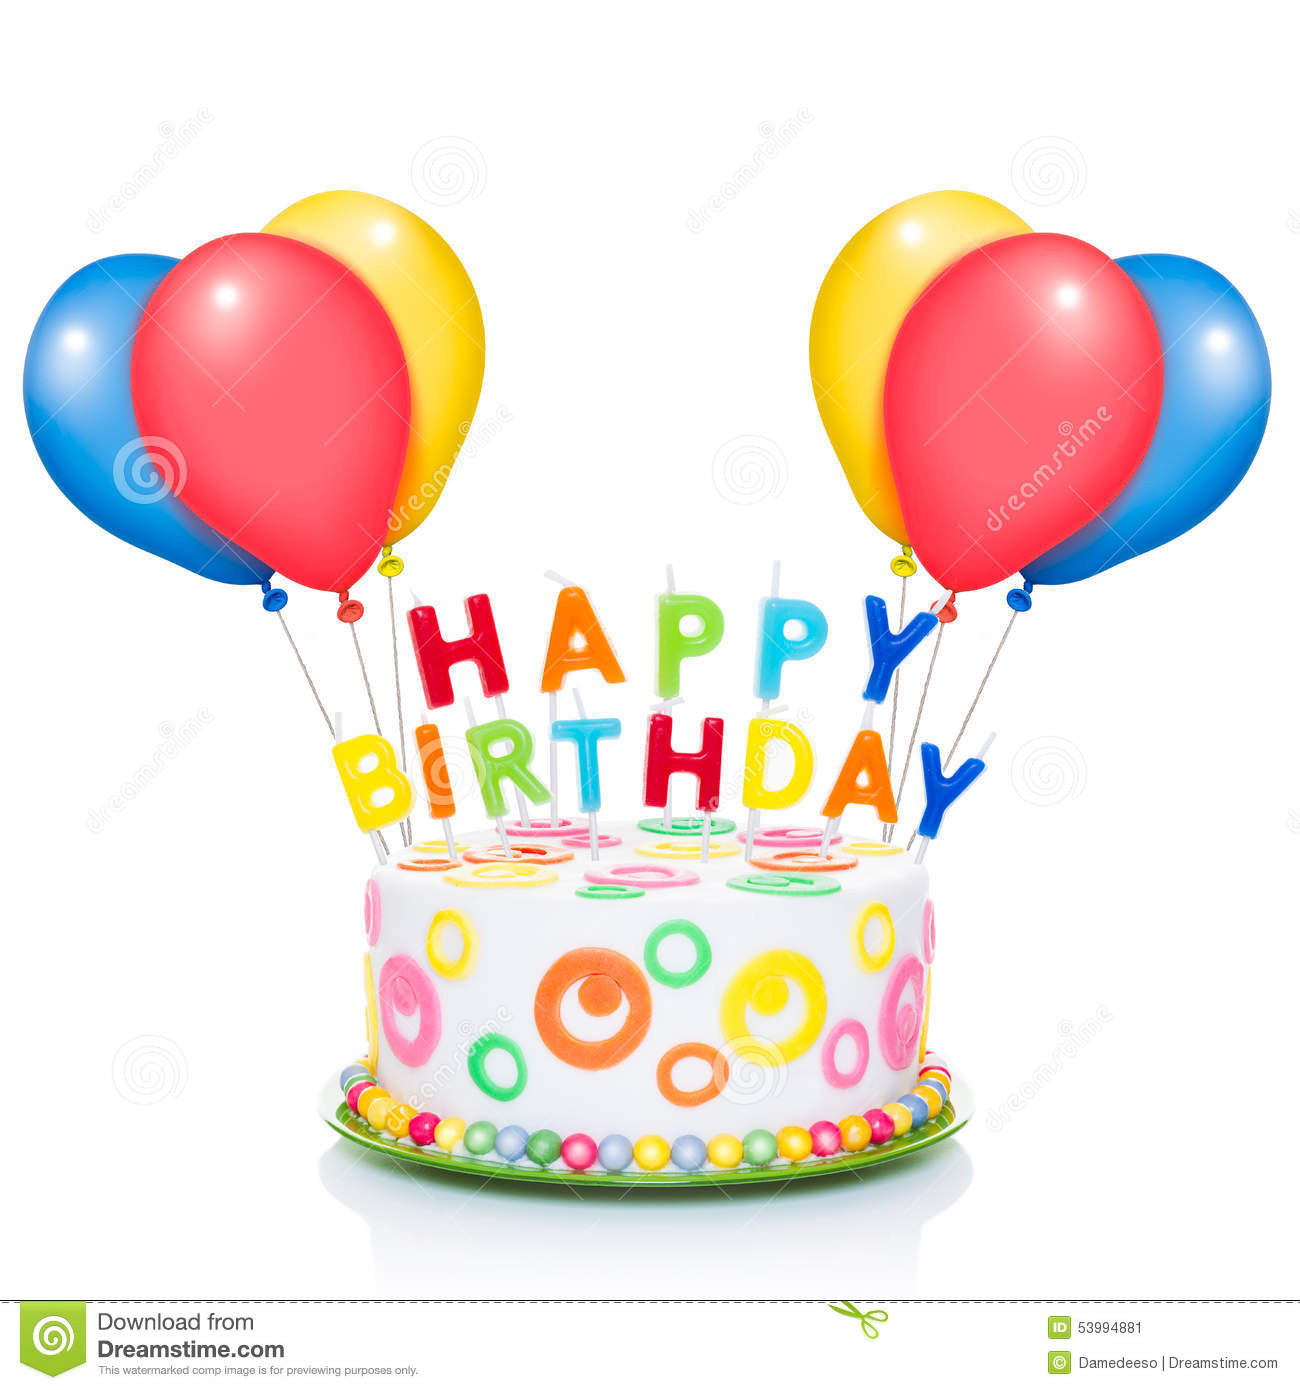 Birthday Cake With Candles And Balloons  Happy birthday cake stock image Image of chocolate